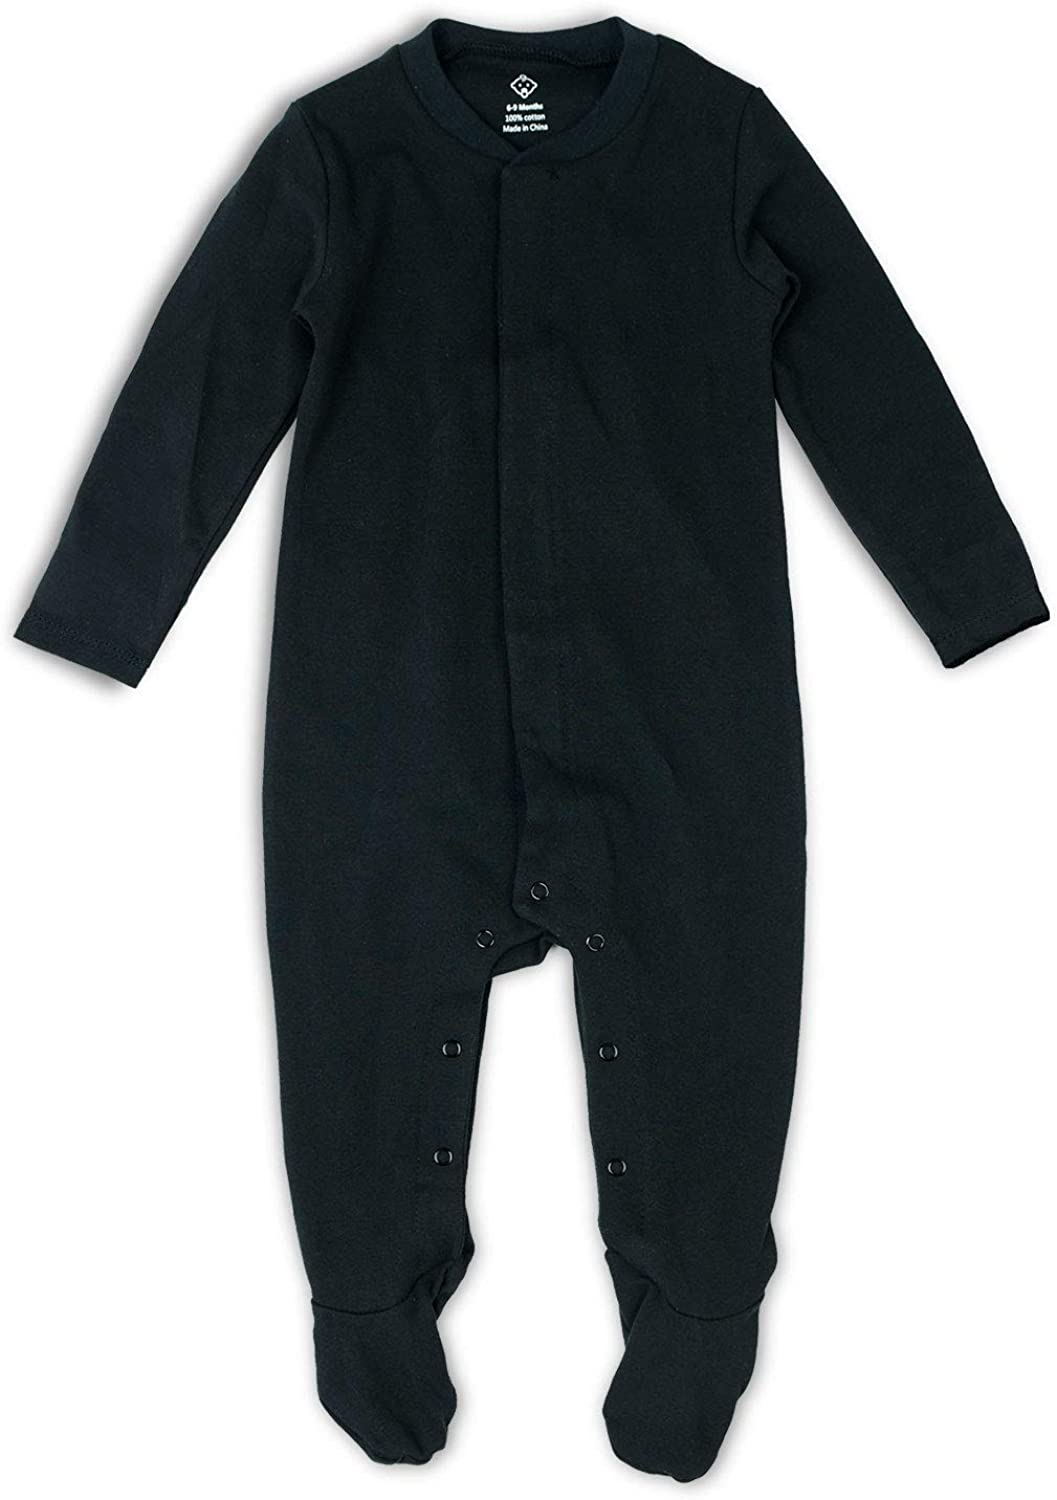 OPAWO Solid Color Unisex Baby Footed Onsies with Rompers Mitten Free Shipping Cheap Max 41% OFF Bargain Gift